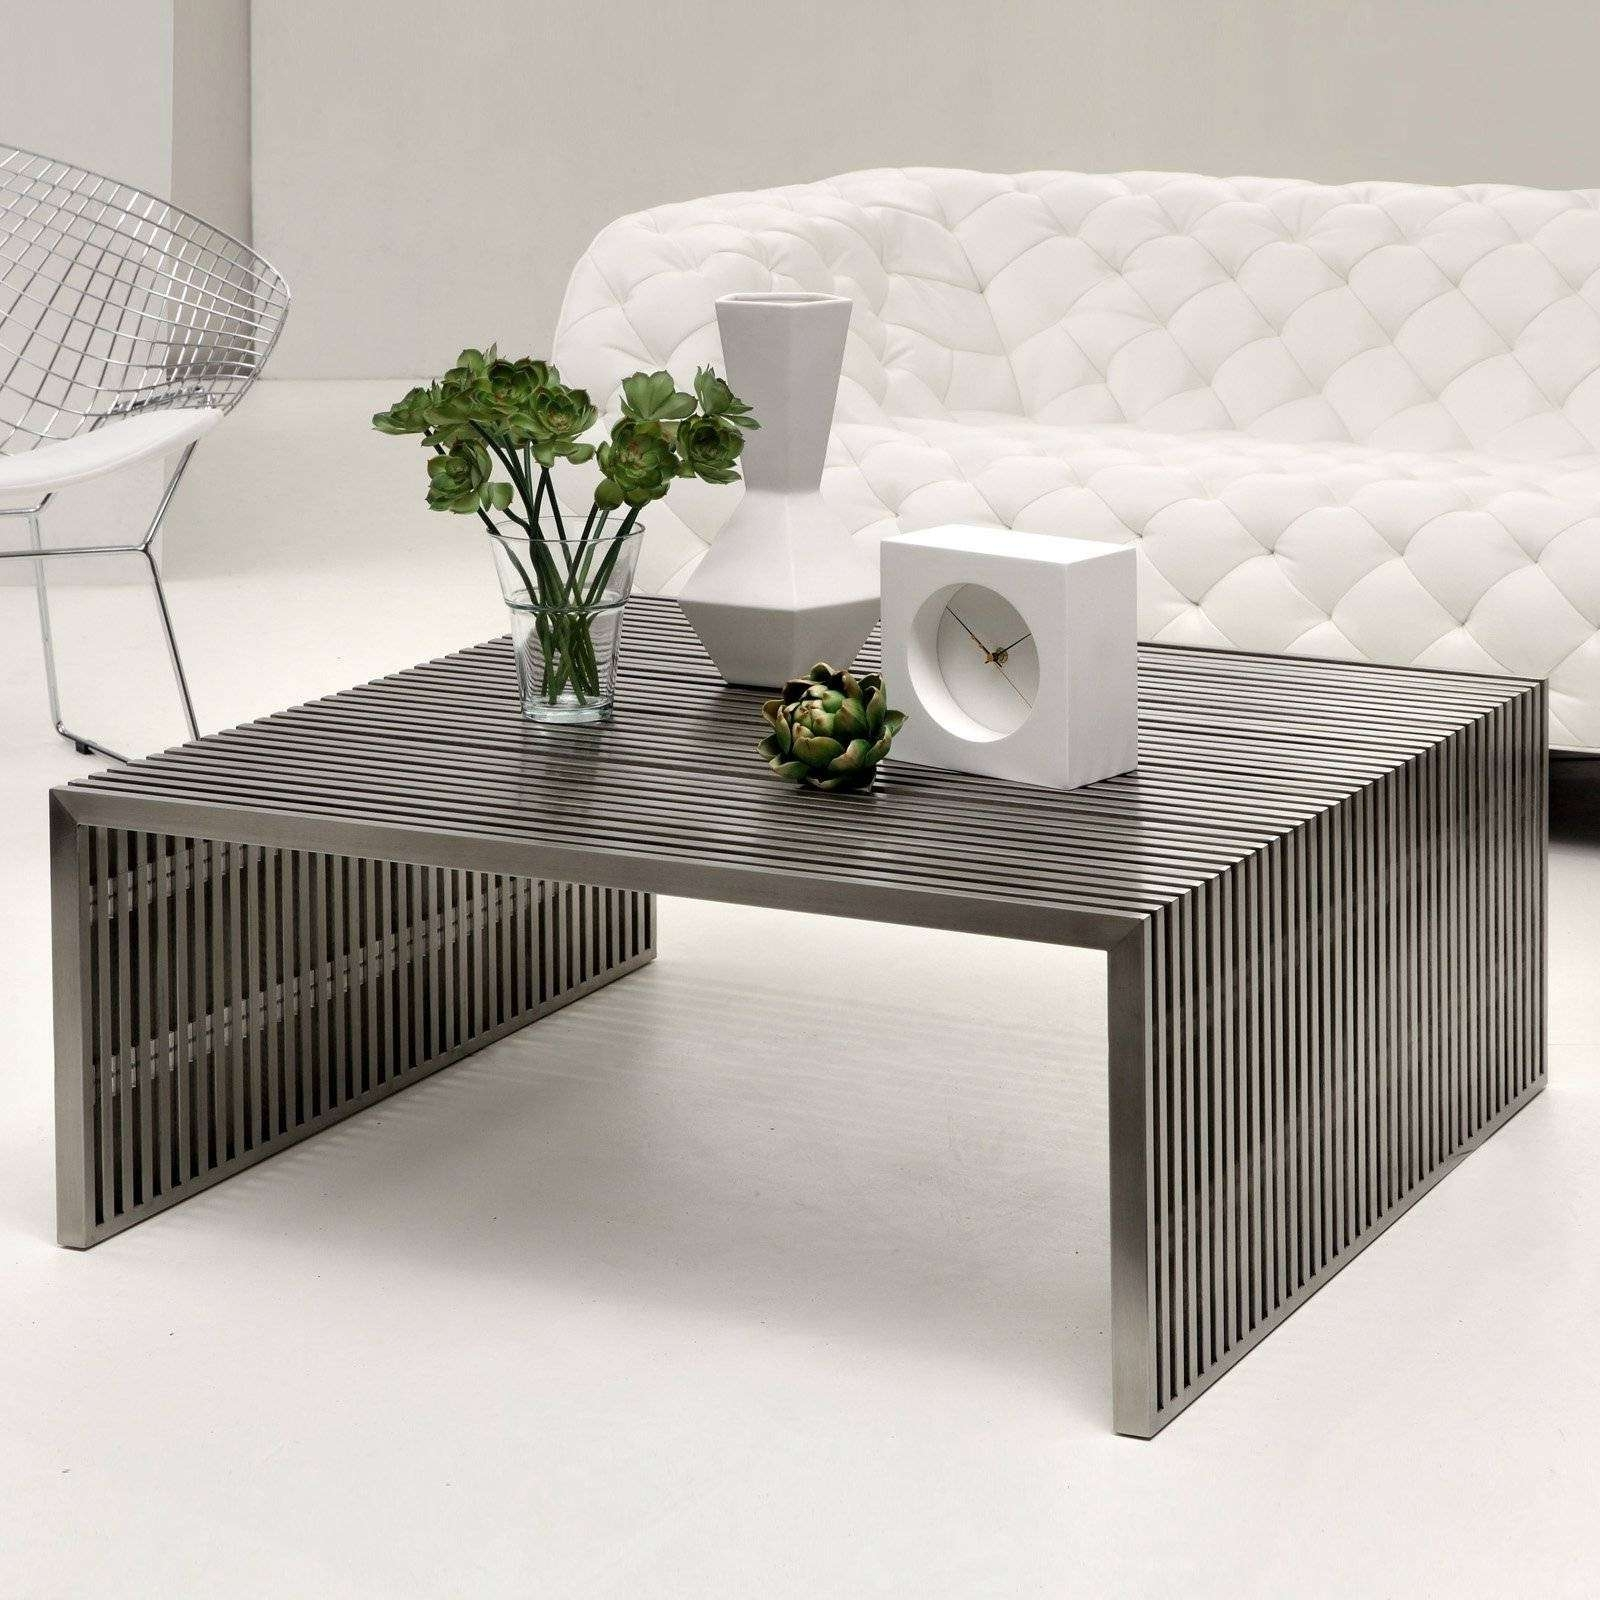 Popular Square Coffee Table Modern With Coffee Table : Contemporary Concretefee Table Square Latest (View 8 of 20)